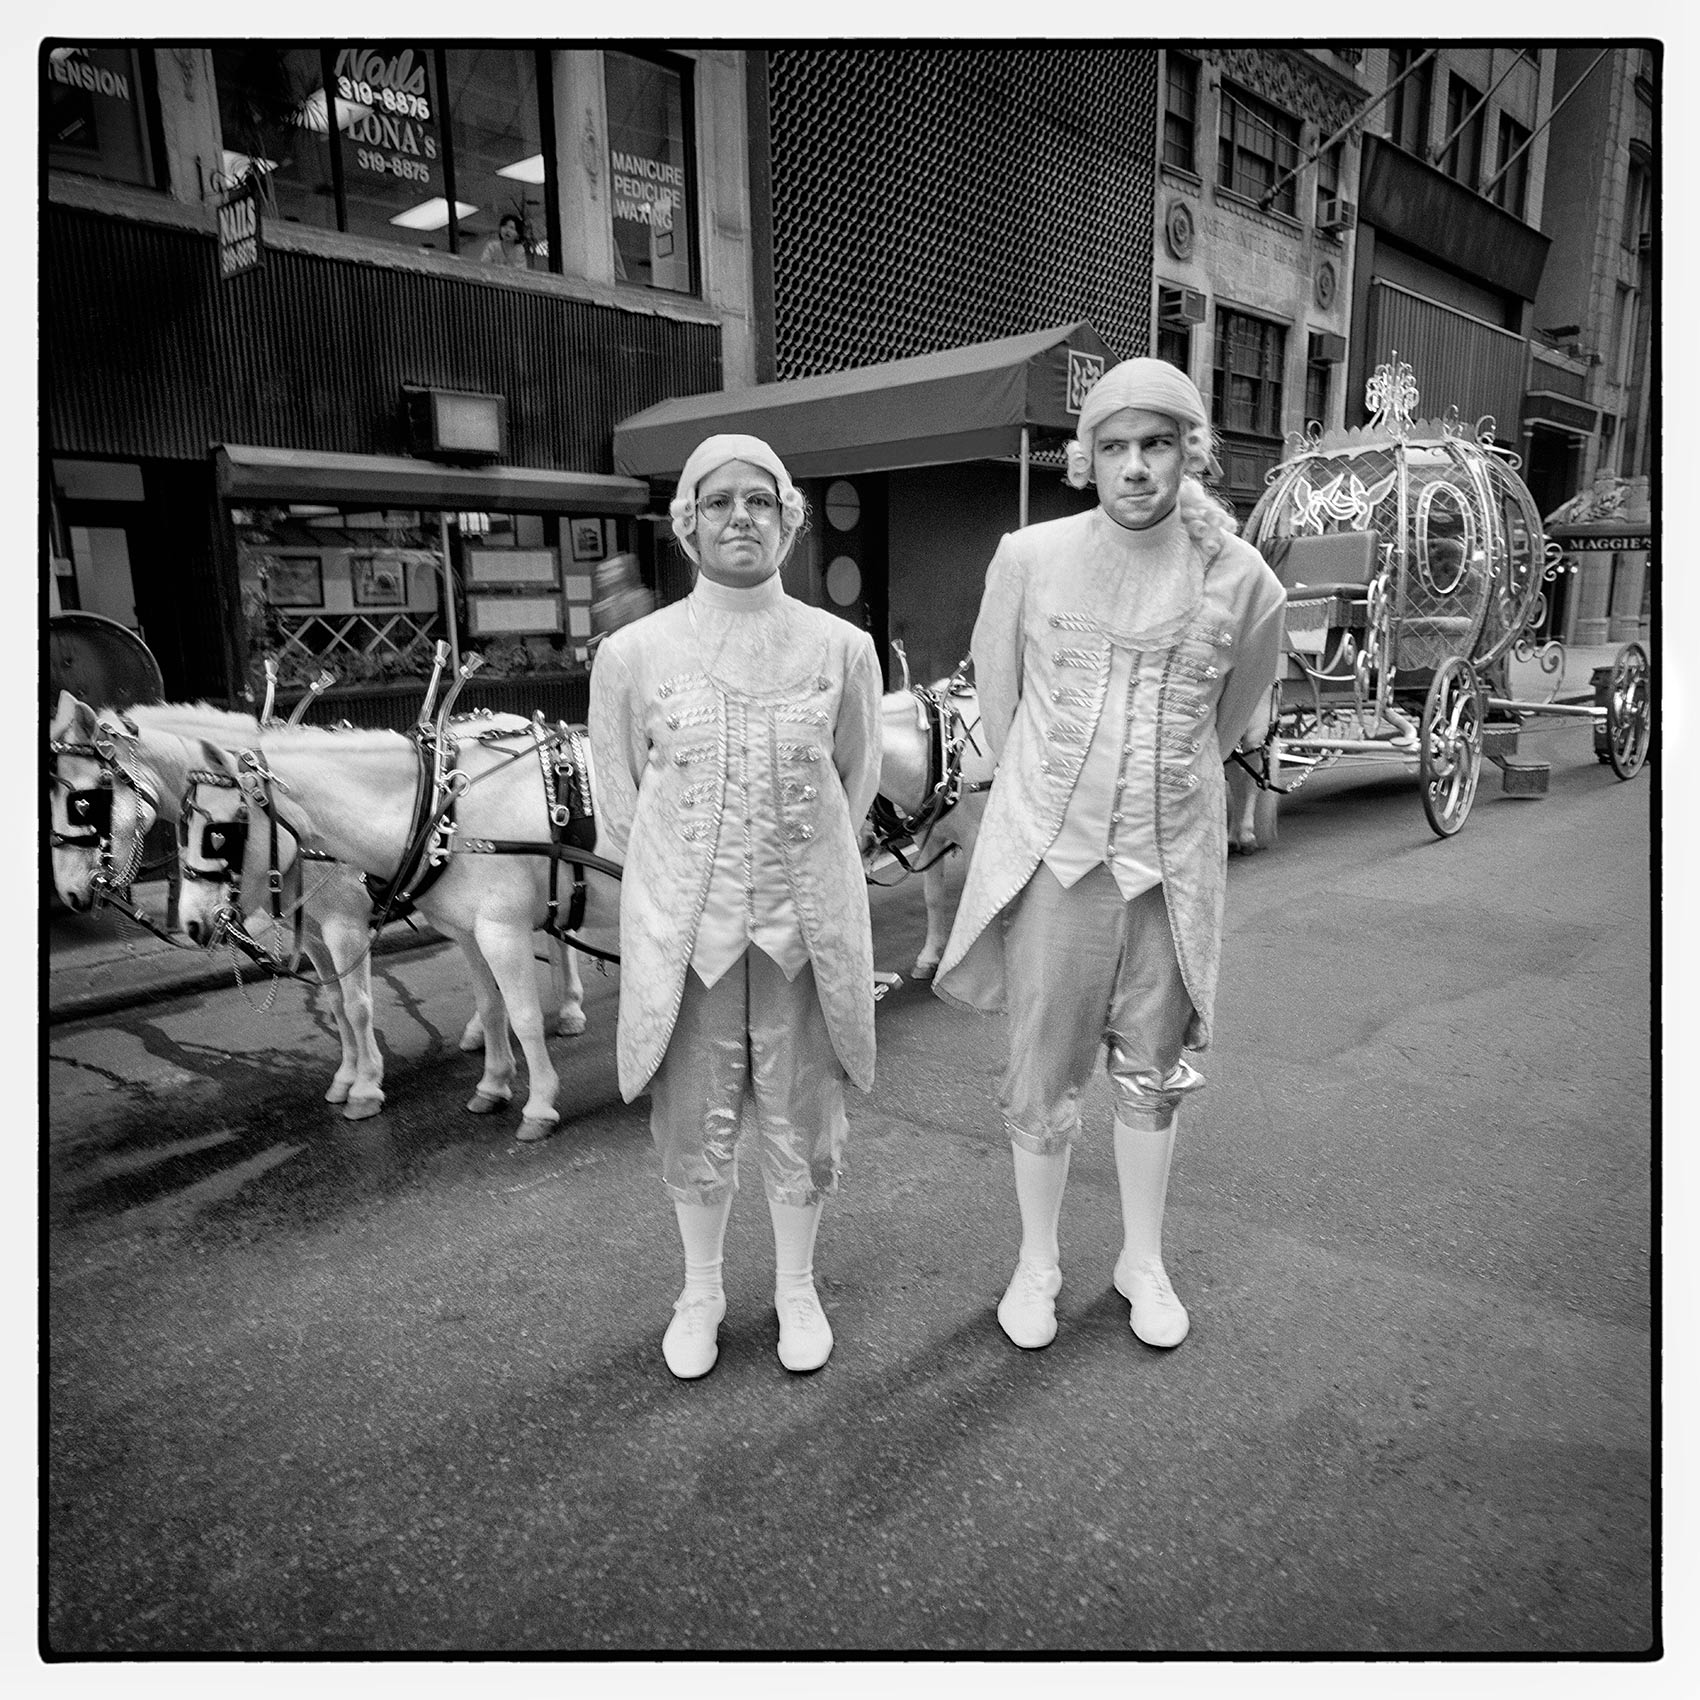 a-couple-dressed-as-carriage-drivers-pose-outside-the-cinderalla-carriage-before-it-appears-in-the-new-york-thanksgiving-parade-in-manhattan